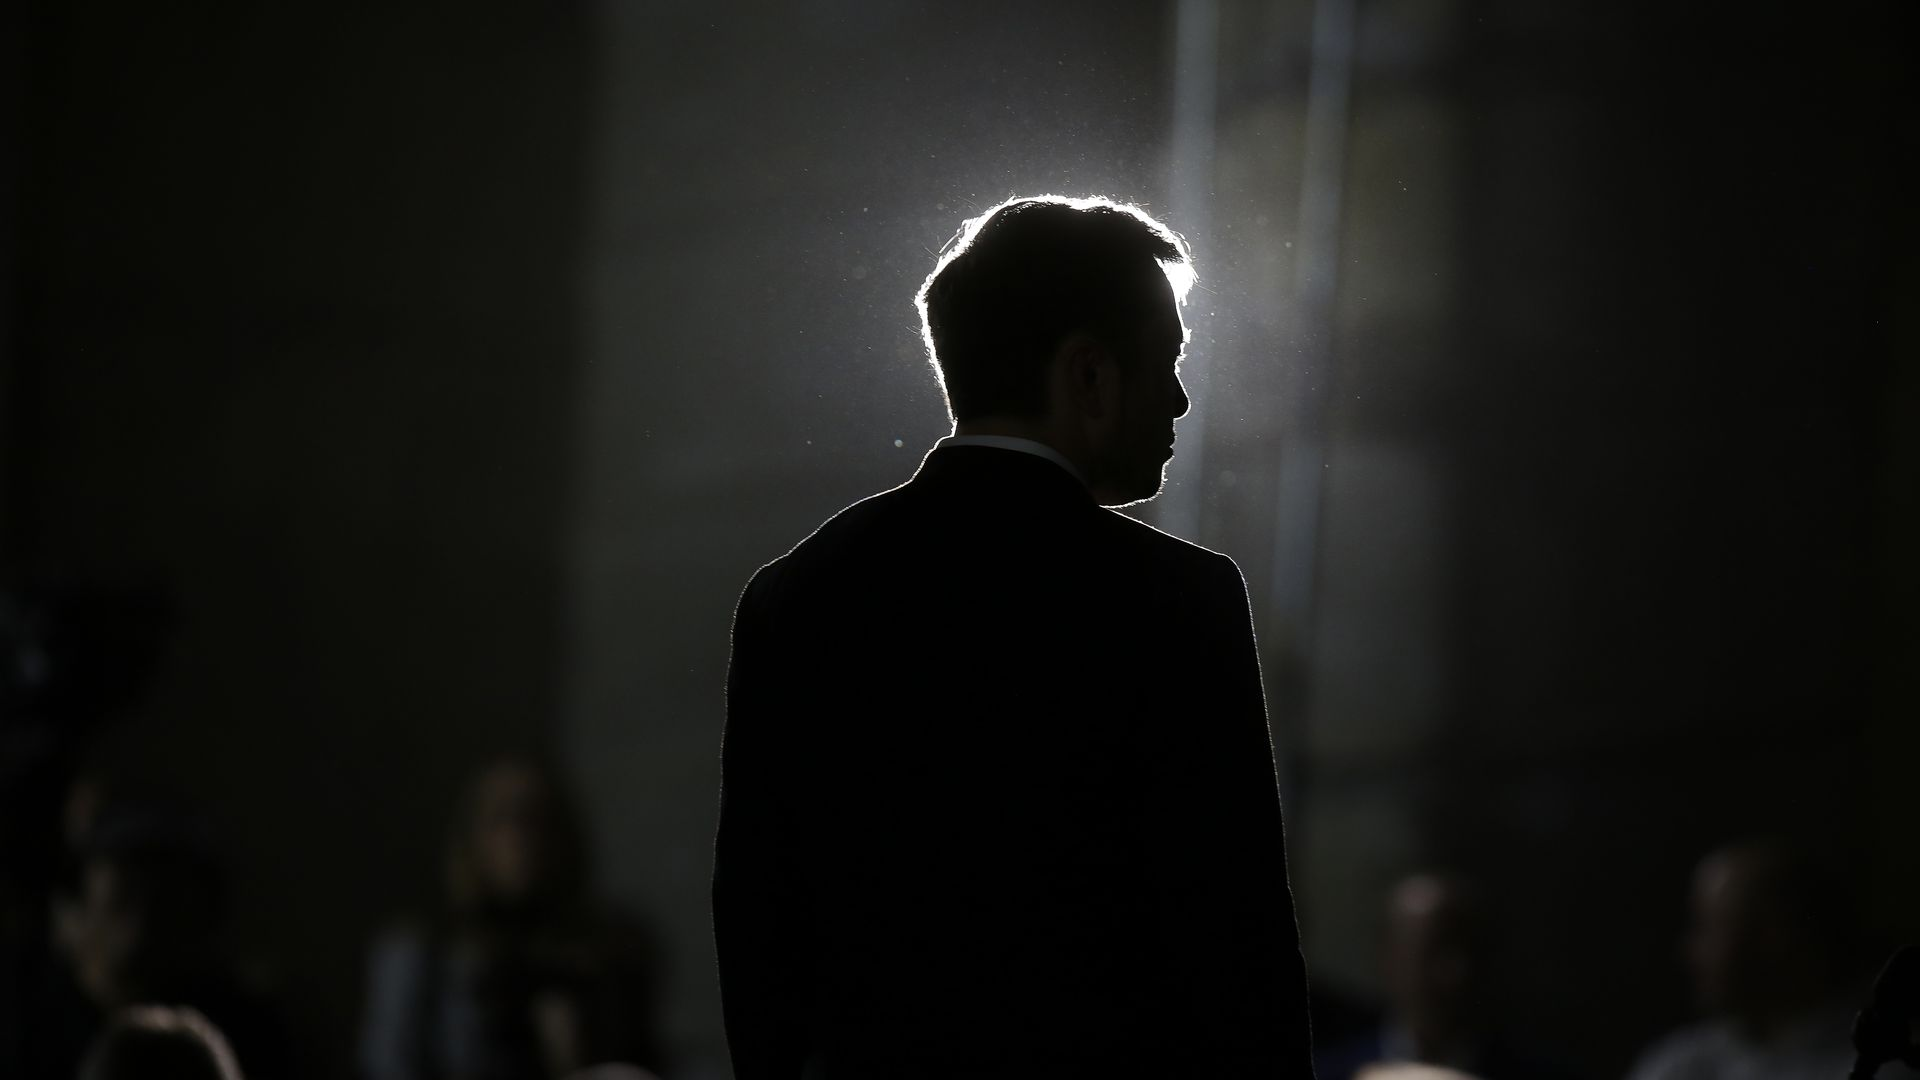 Here is Tesla CEO Elon Musk draped in shadows